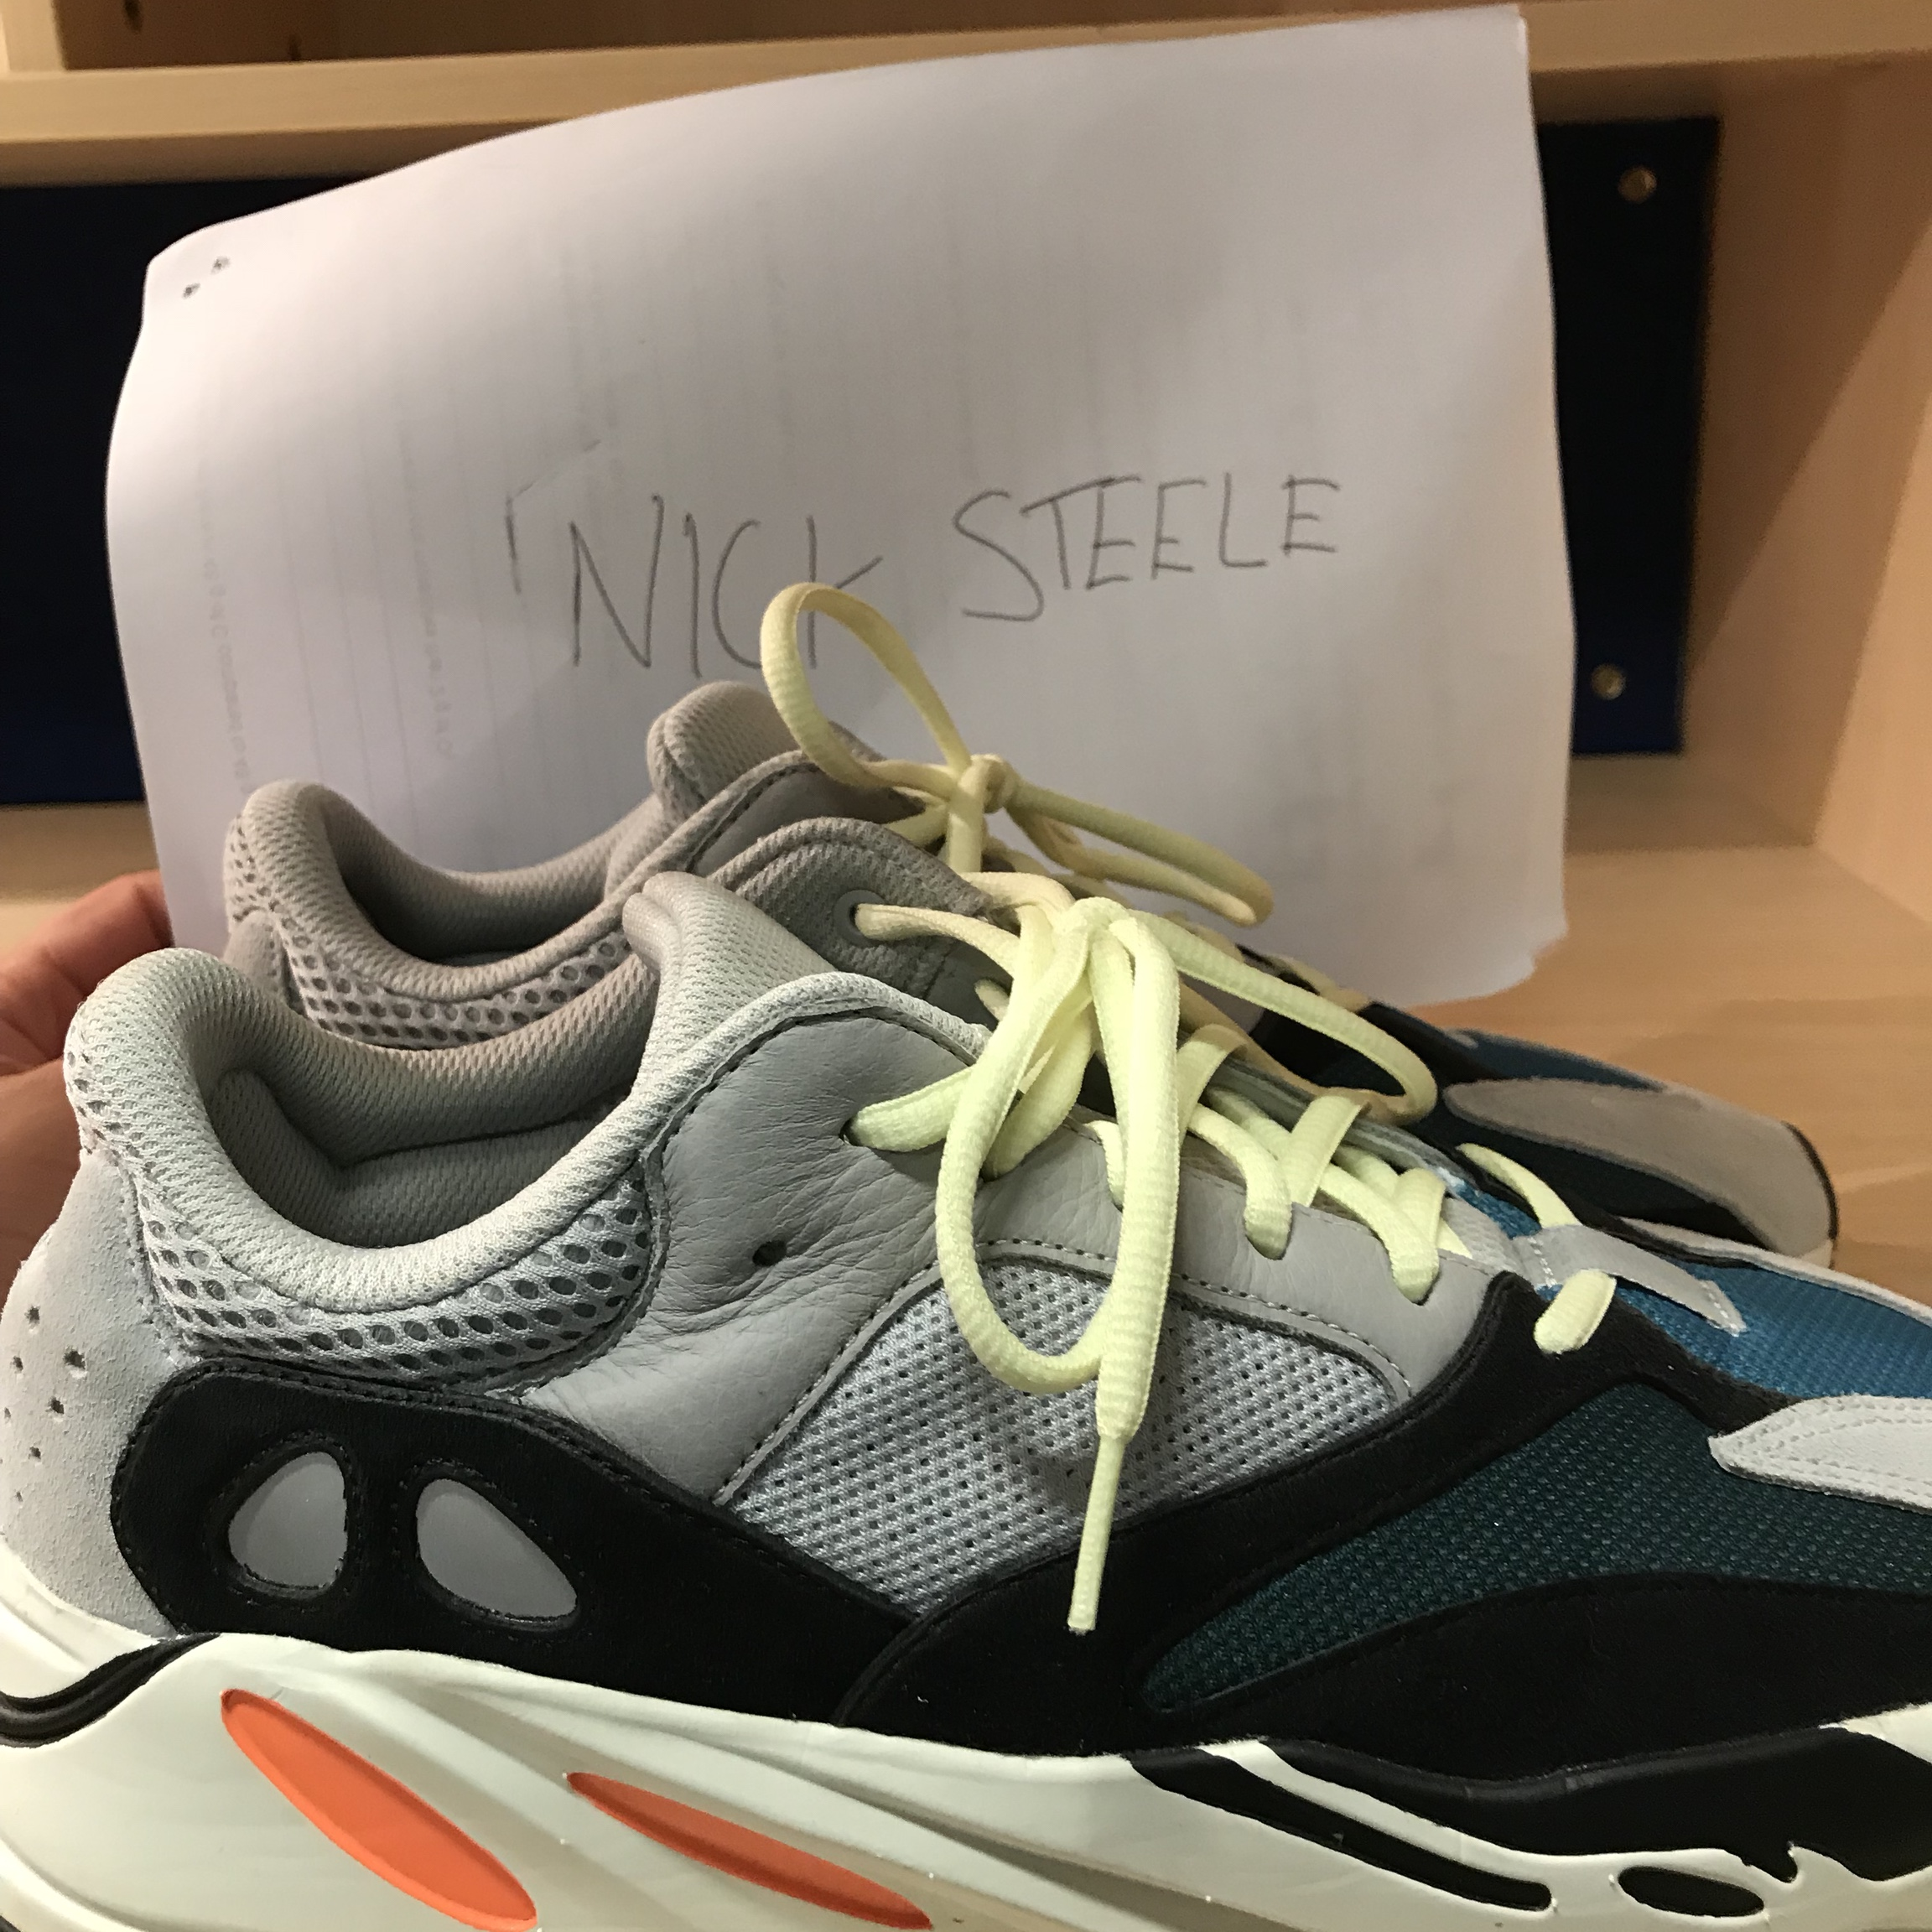 Yeezy 700 Wave runner Size UK 11 fits